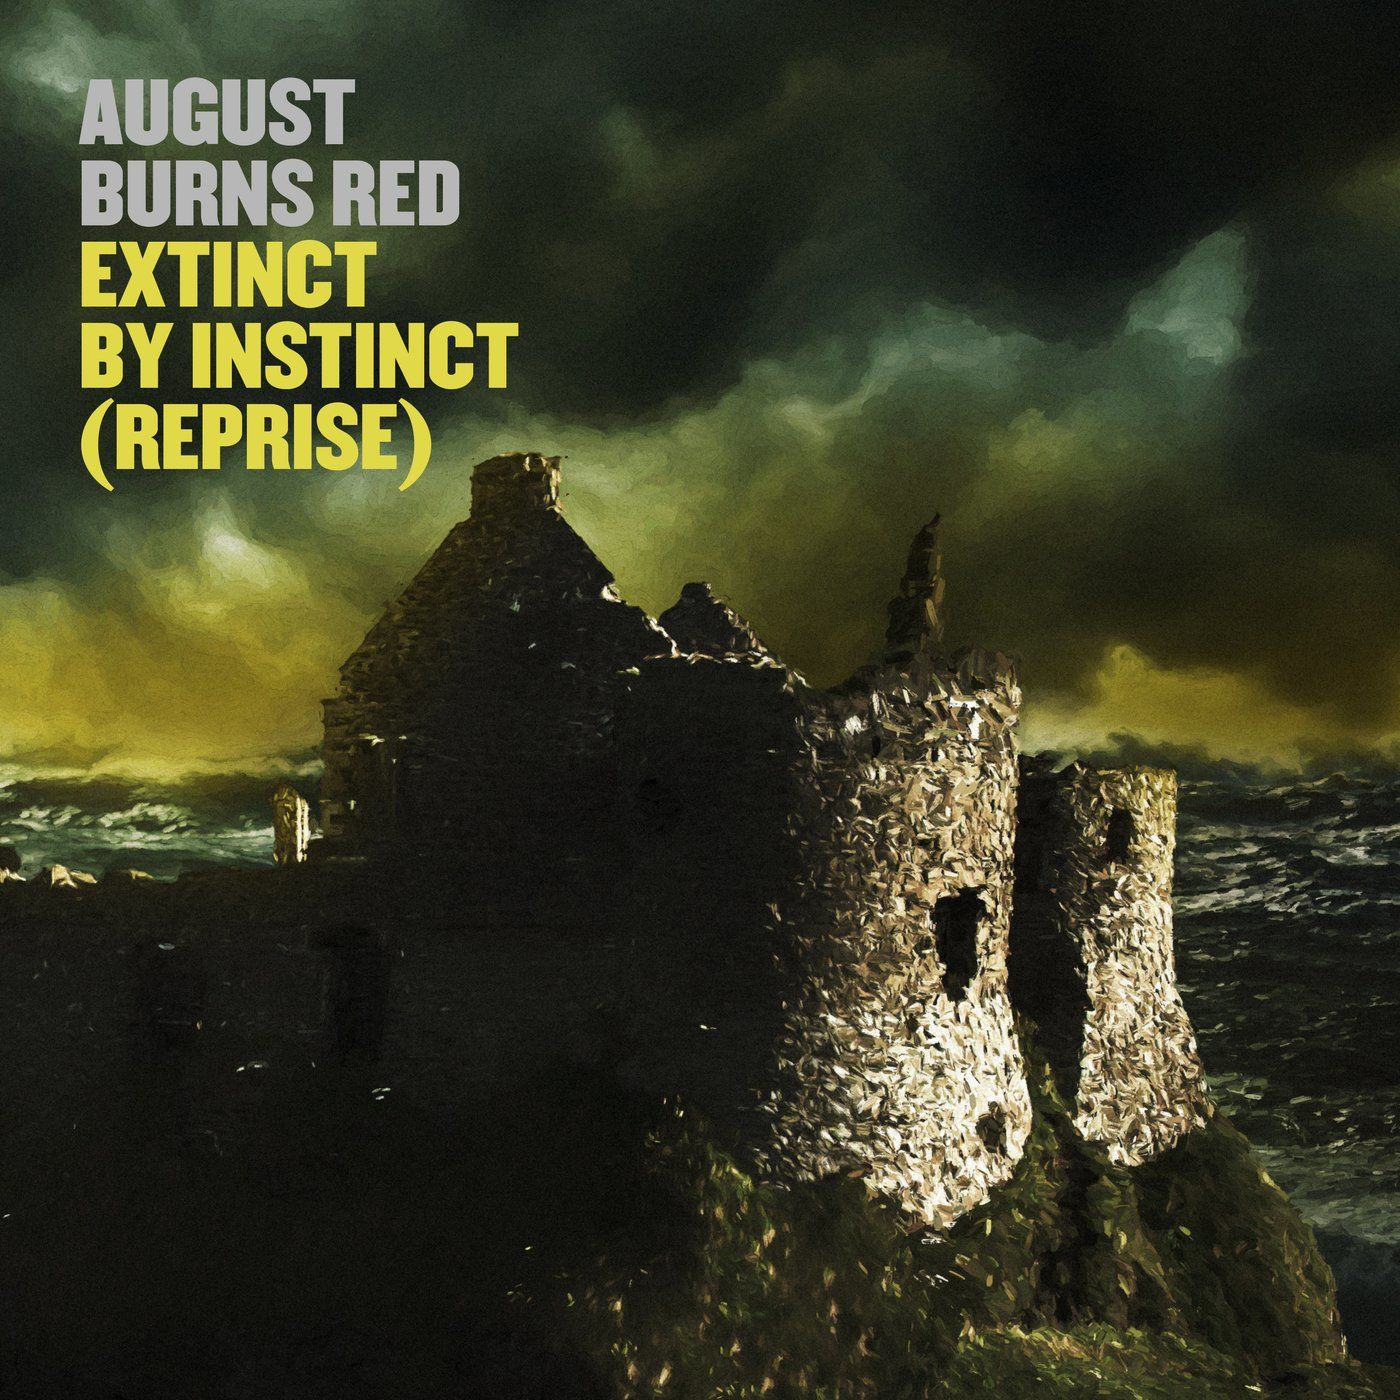 August Burns Red - Extinct By Instinct (Reprise) [single] (2021)